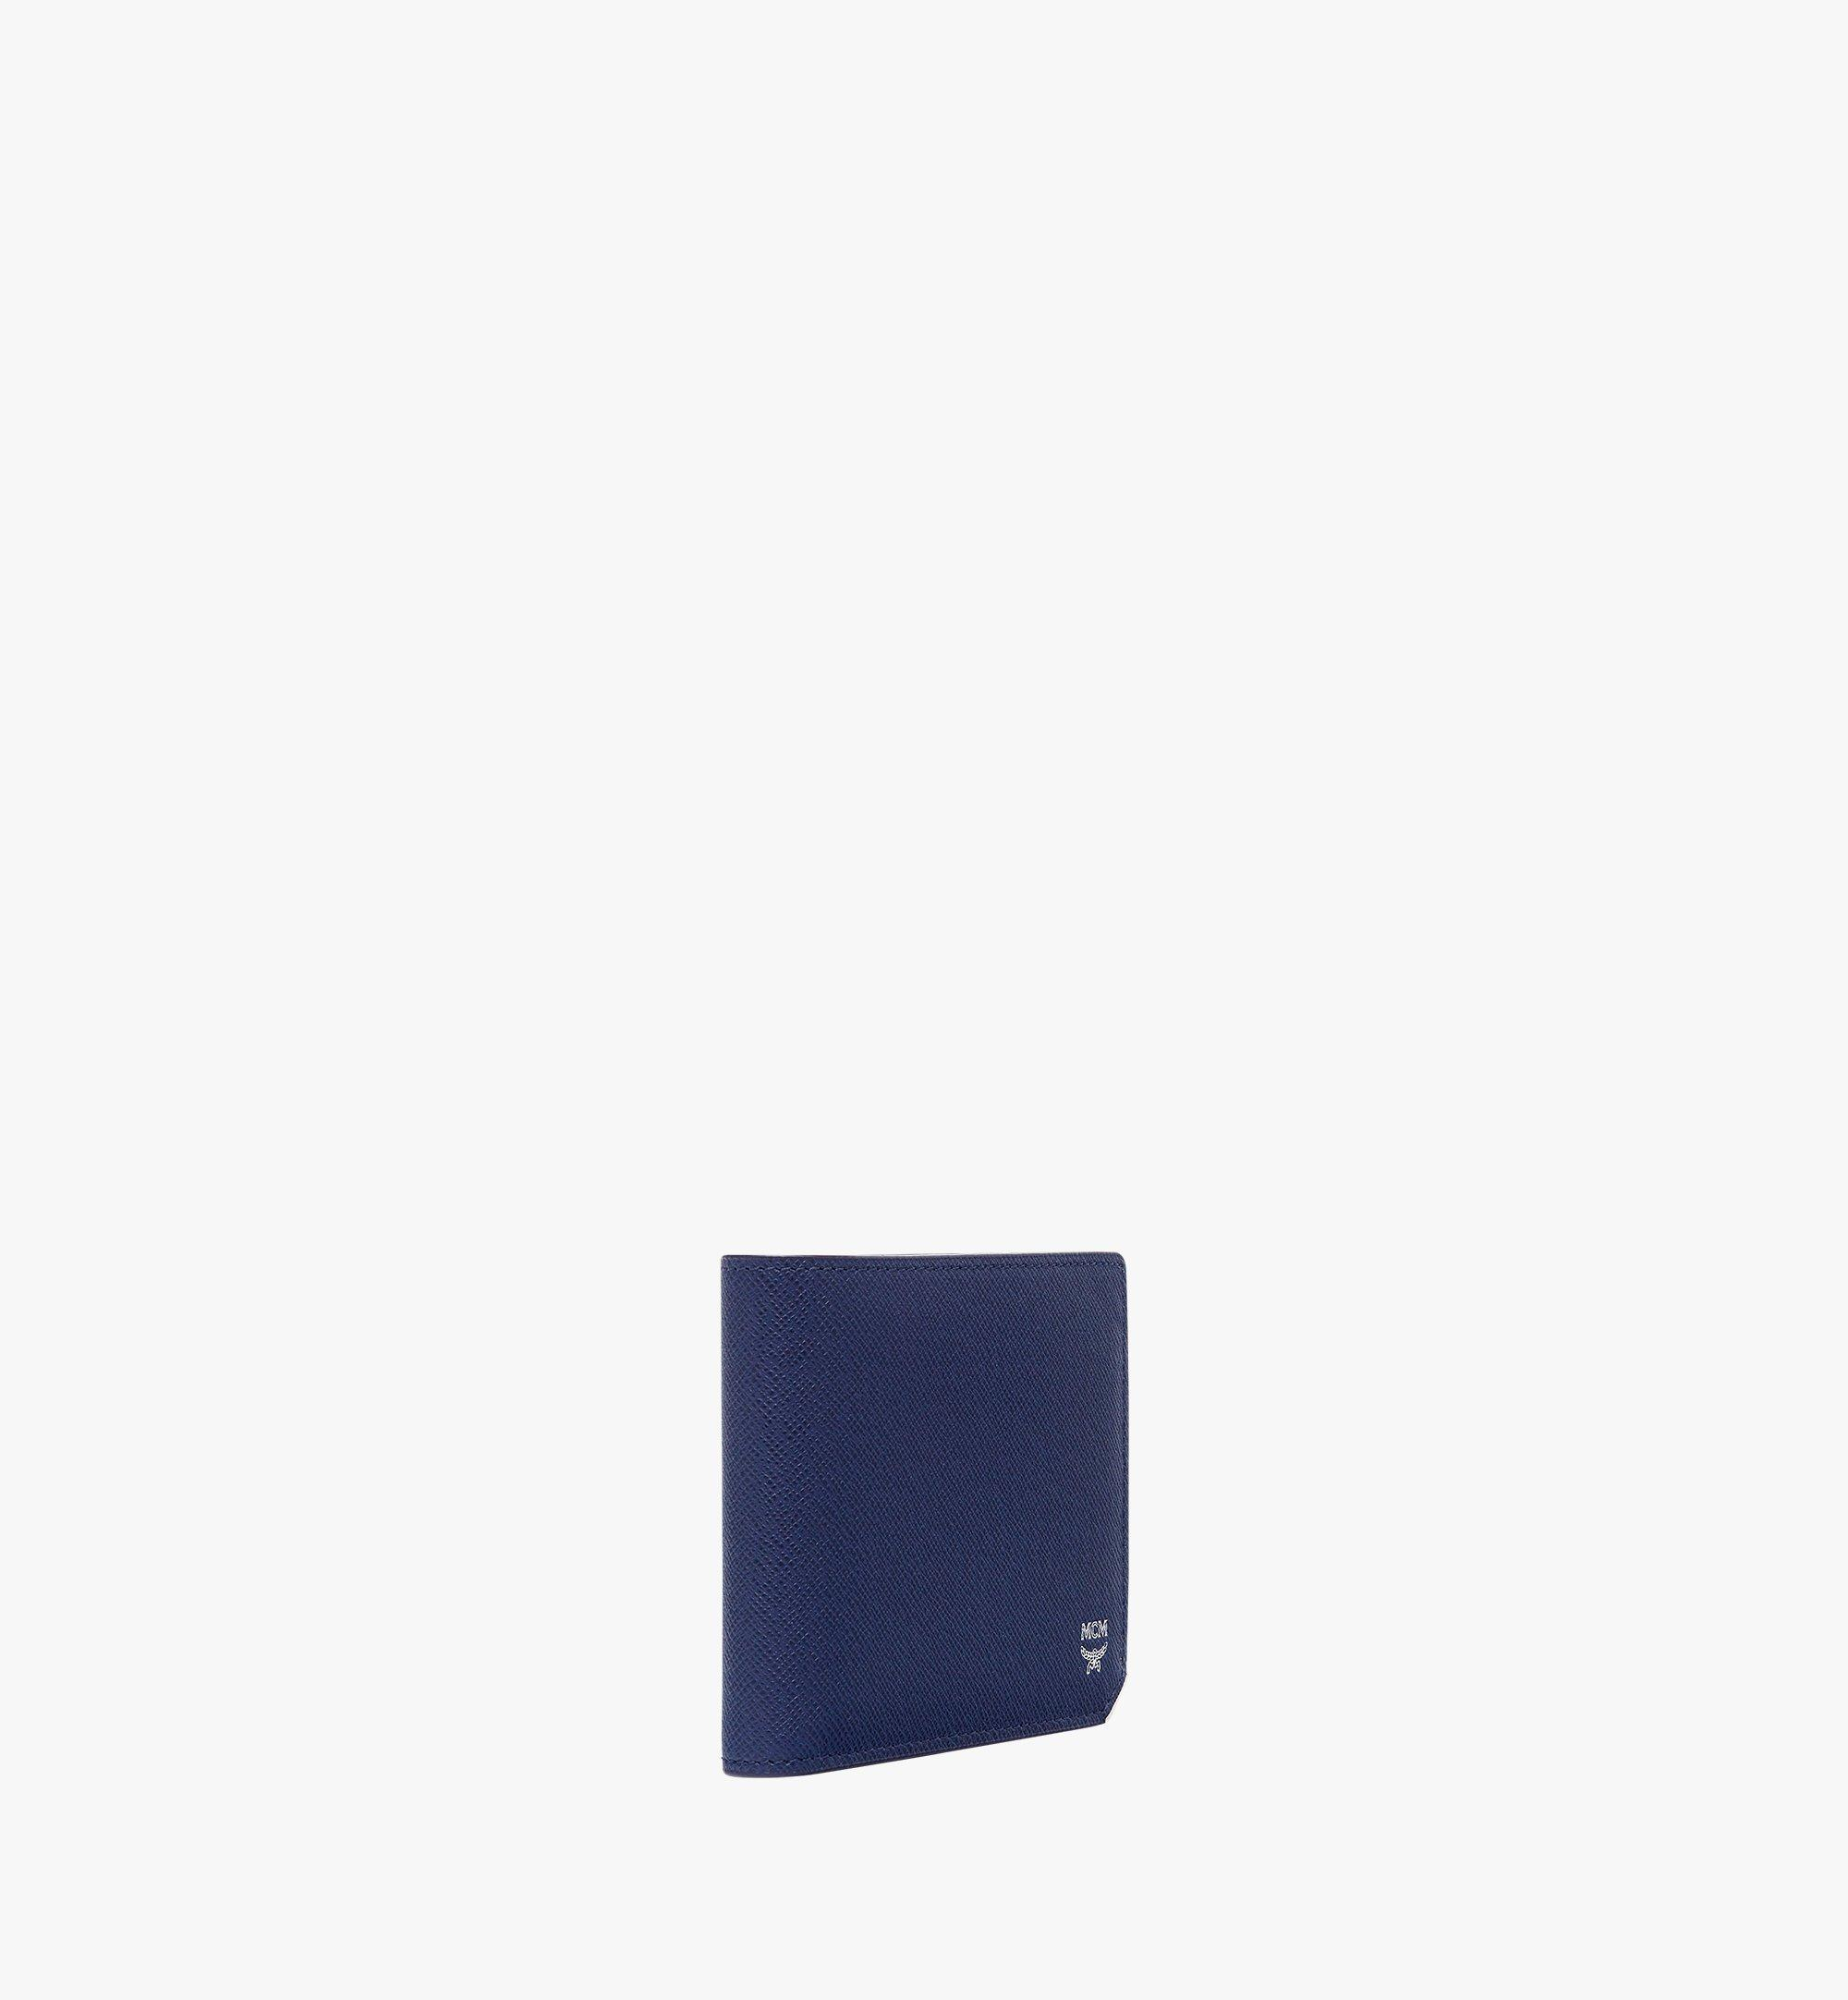 MCM New Bric Bifold with Card Case in Embossed Leather Navy MXS8ALL42VY001 Alternate View 1